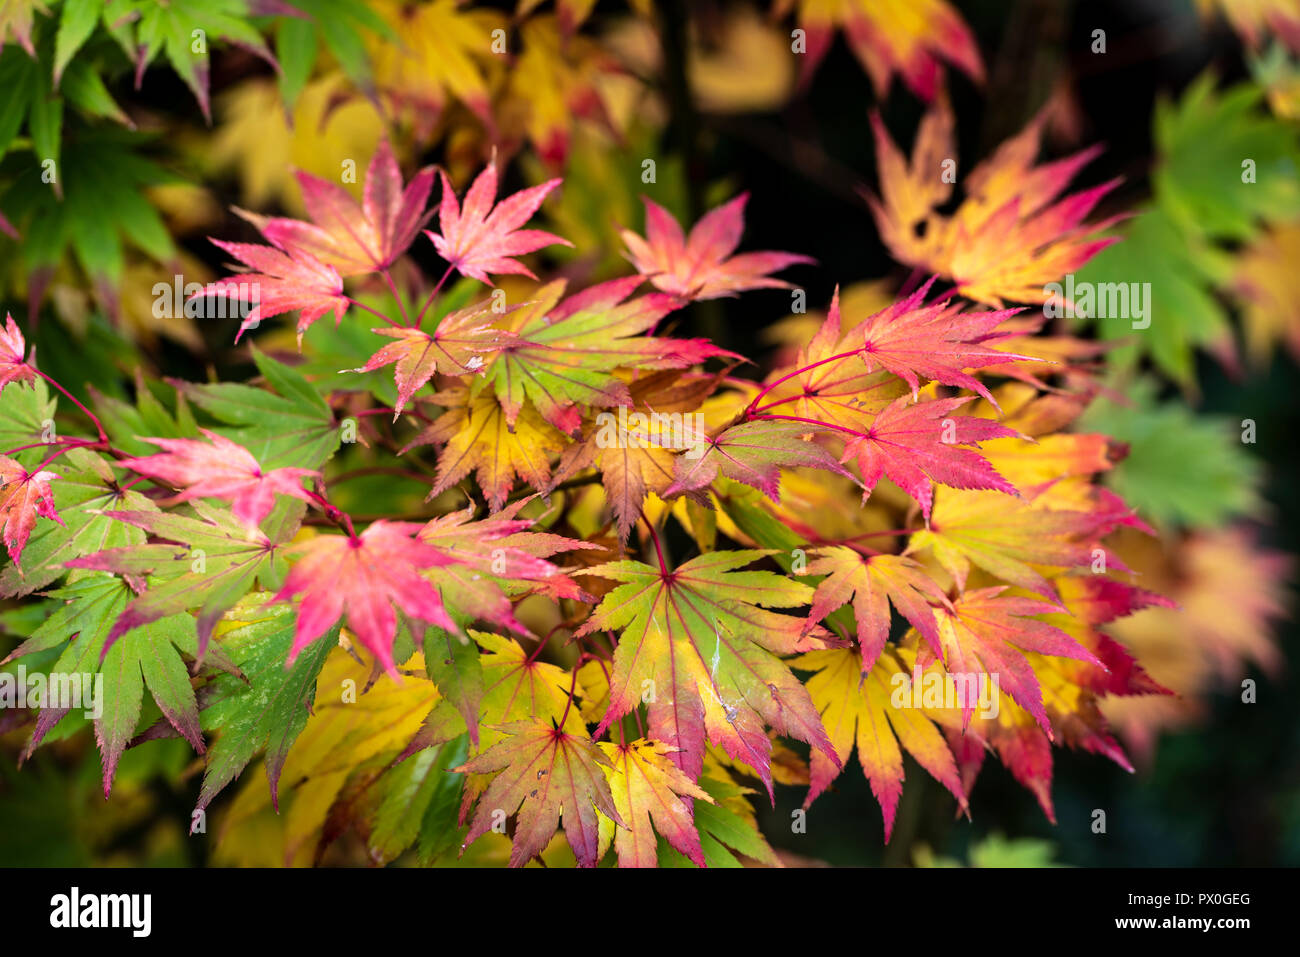 Acer Shirasawanum Stock Photos Acer Shirasawanum Stock Images Alamy